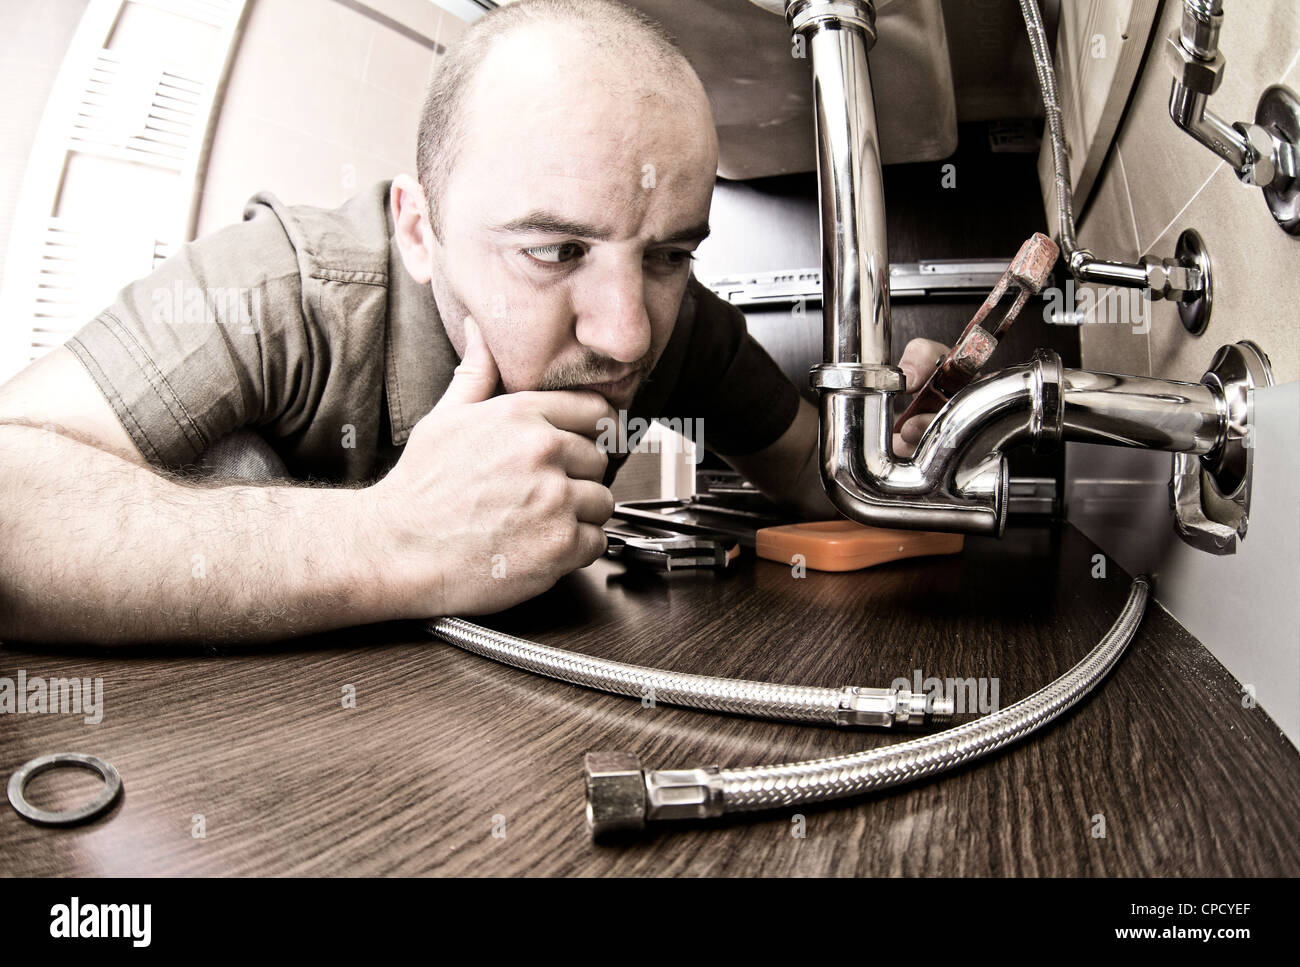 plumber thinking how to fix - Stock Image